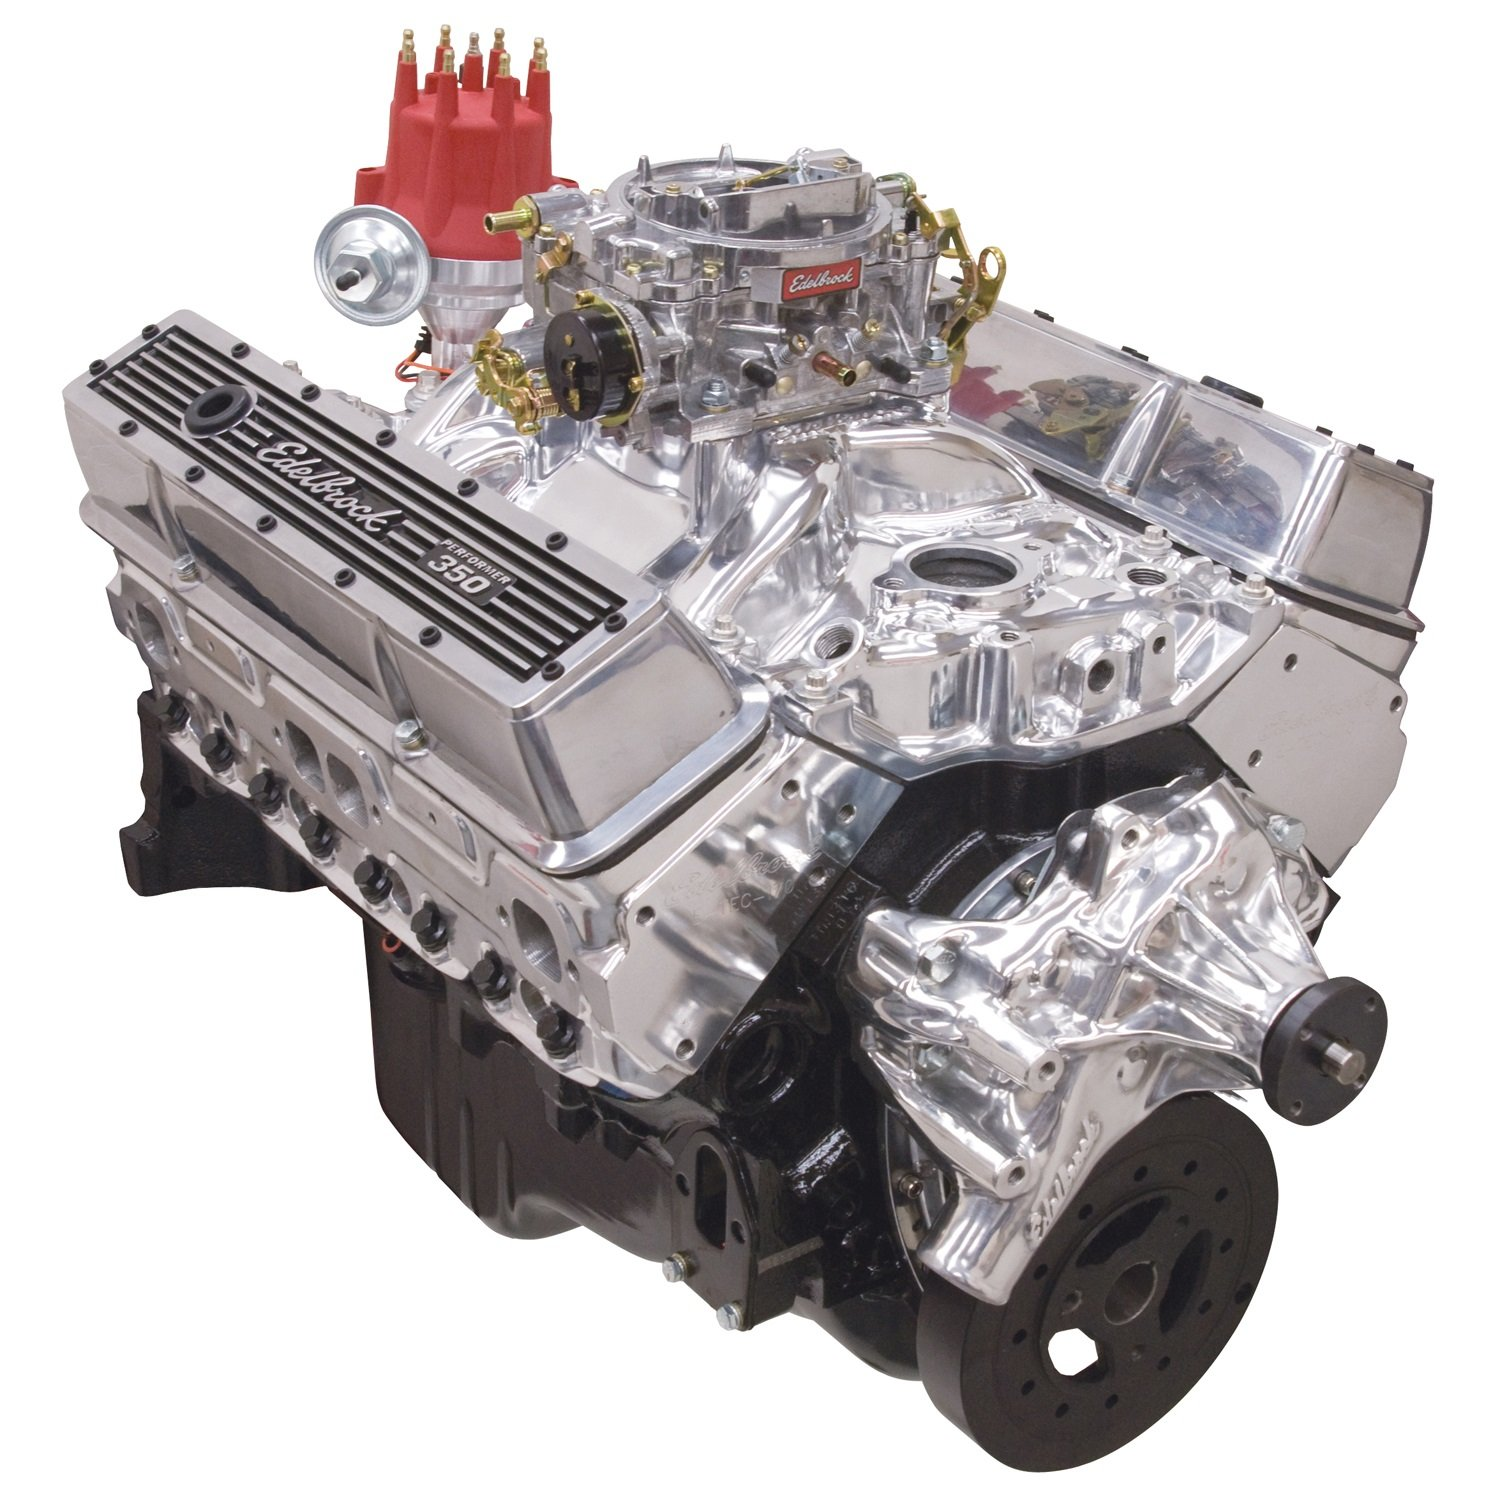 Edelbrock 46421 Performer 363 Hi-Torq Crate Engine 9.0:1 Compression 353HP/405Torque PerformerEPSVortecManifold/750 CFM Performer Series Carb Elec.Choke w/Long Water Pump PN[8811] Polished Performer 363 Hi-Torq Crate Engine